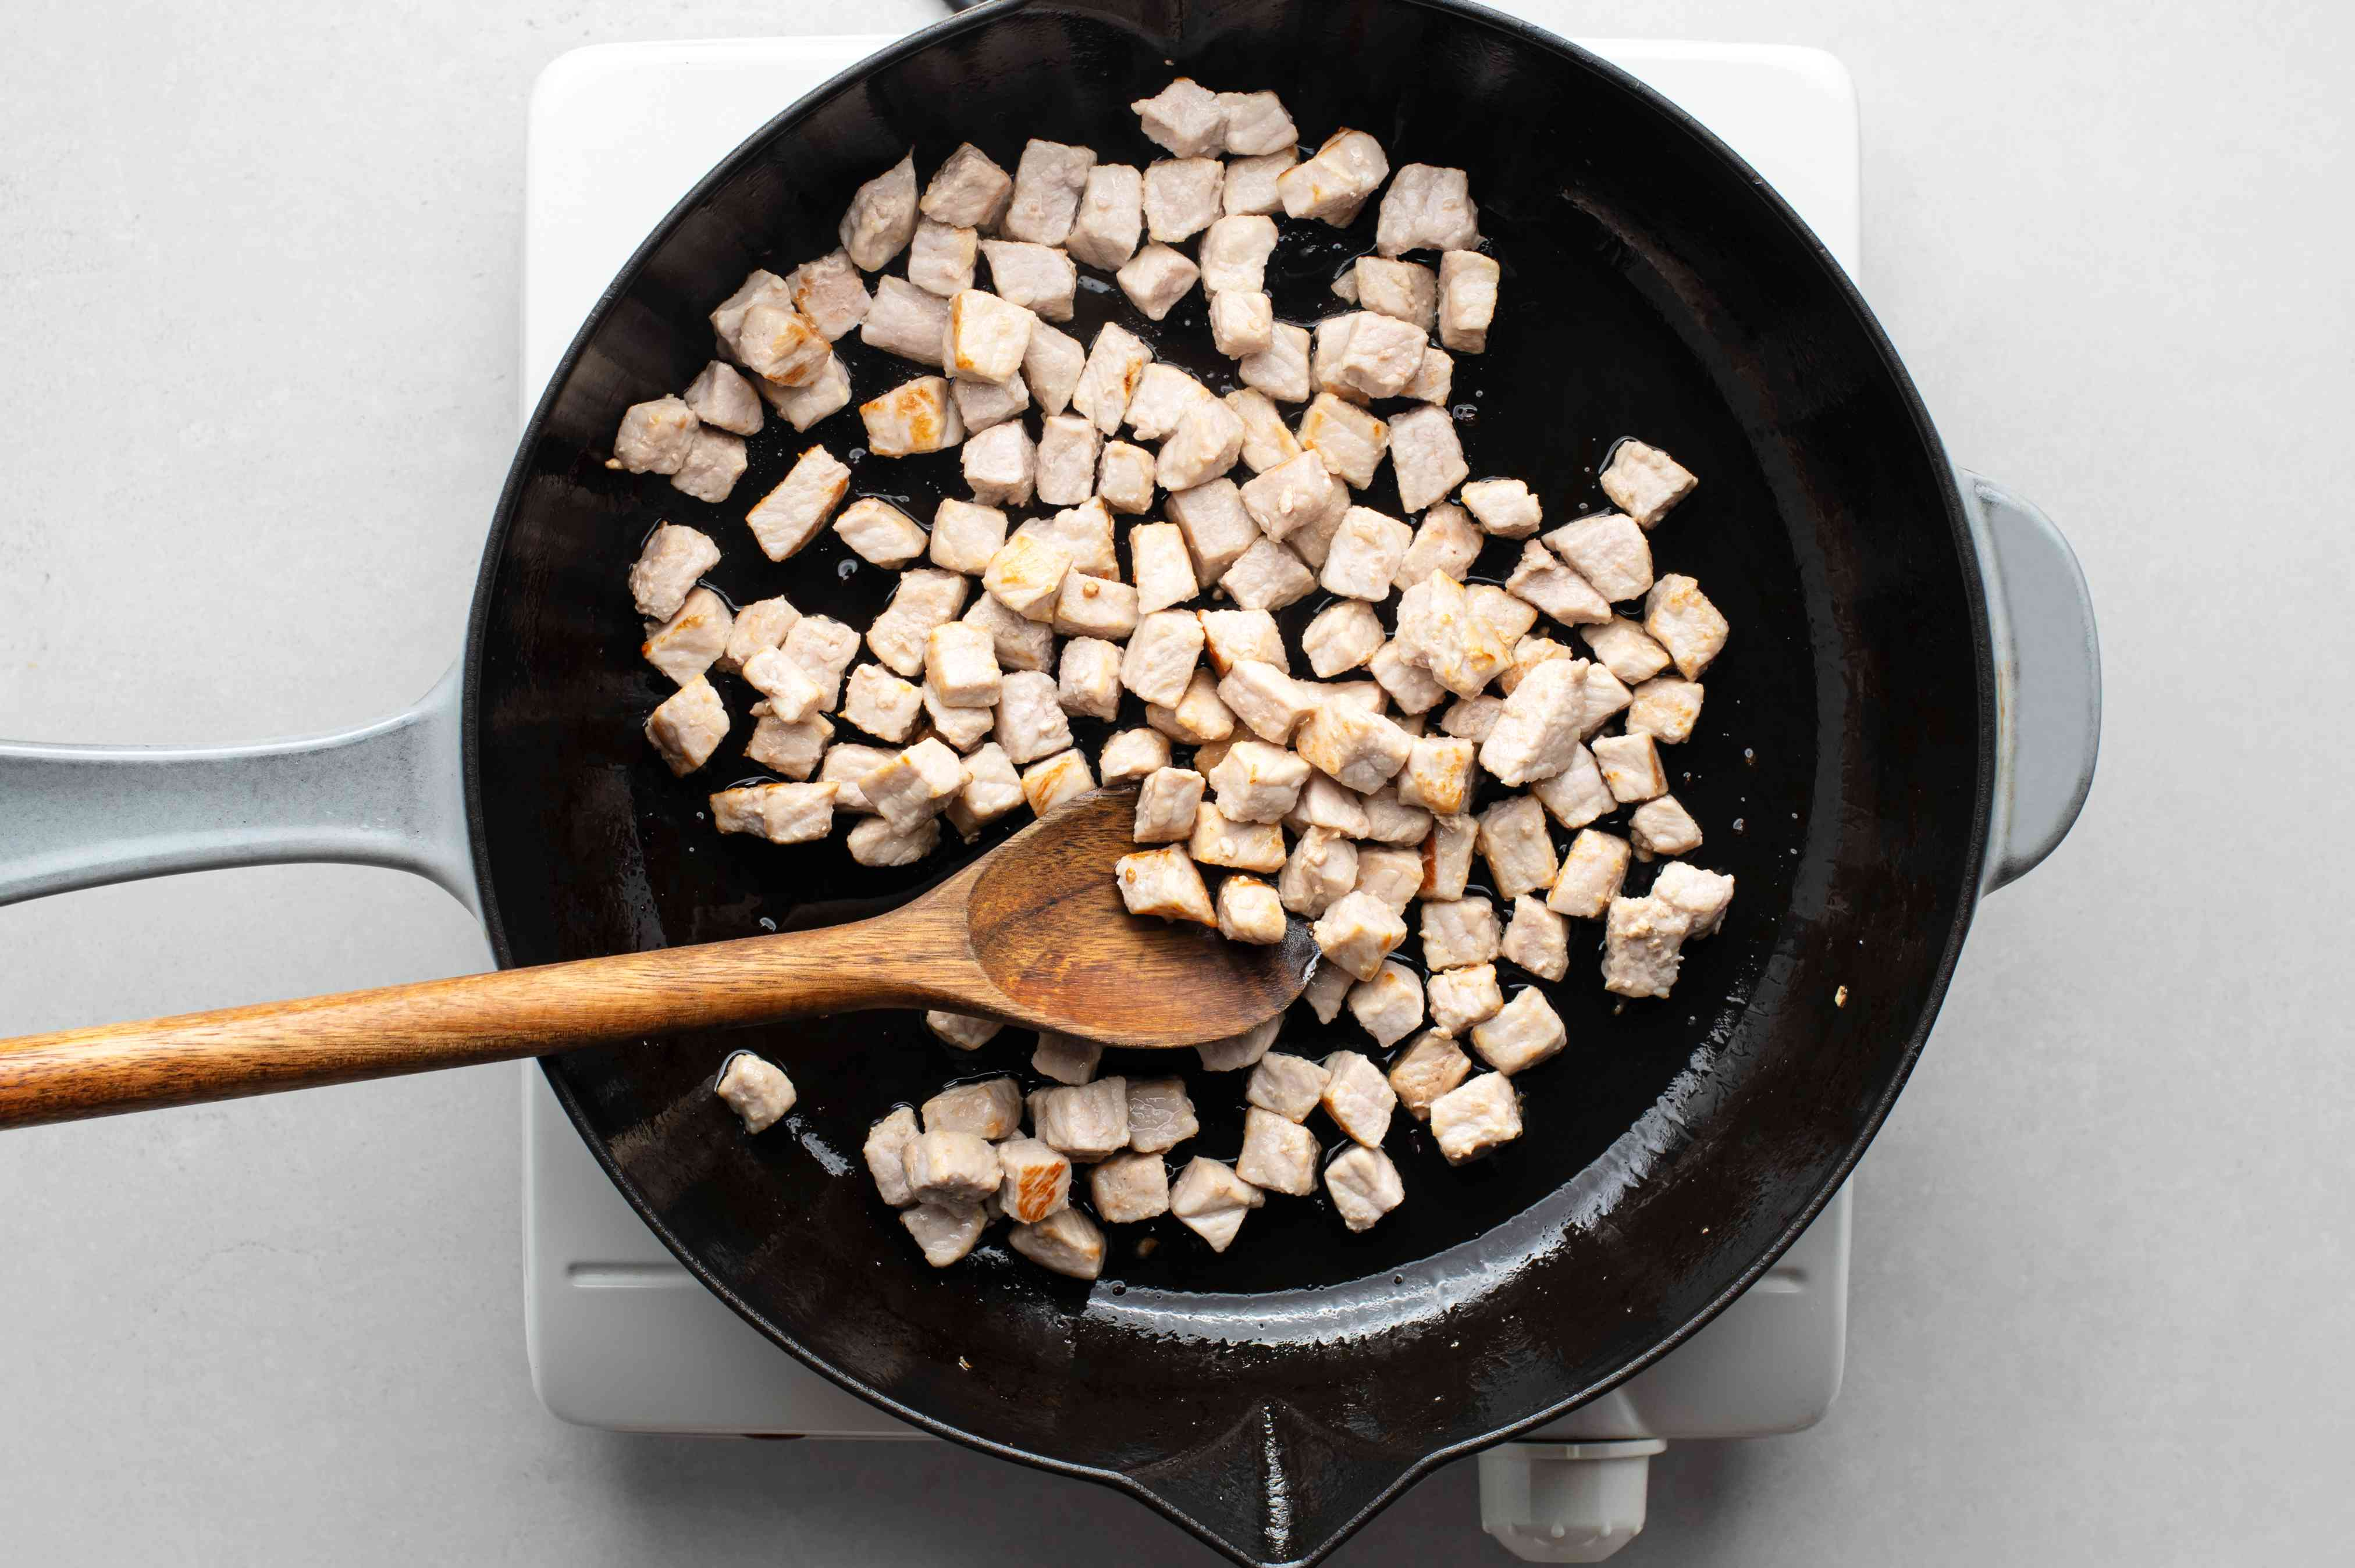 pork cooking in a skillet with oil